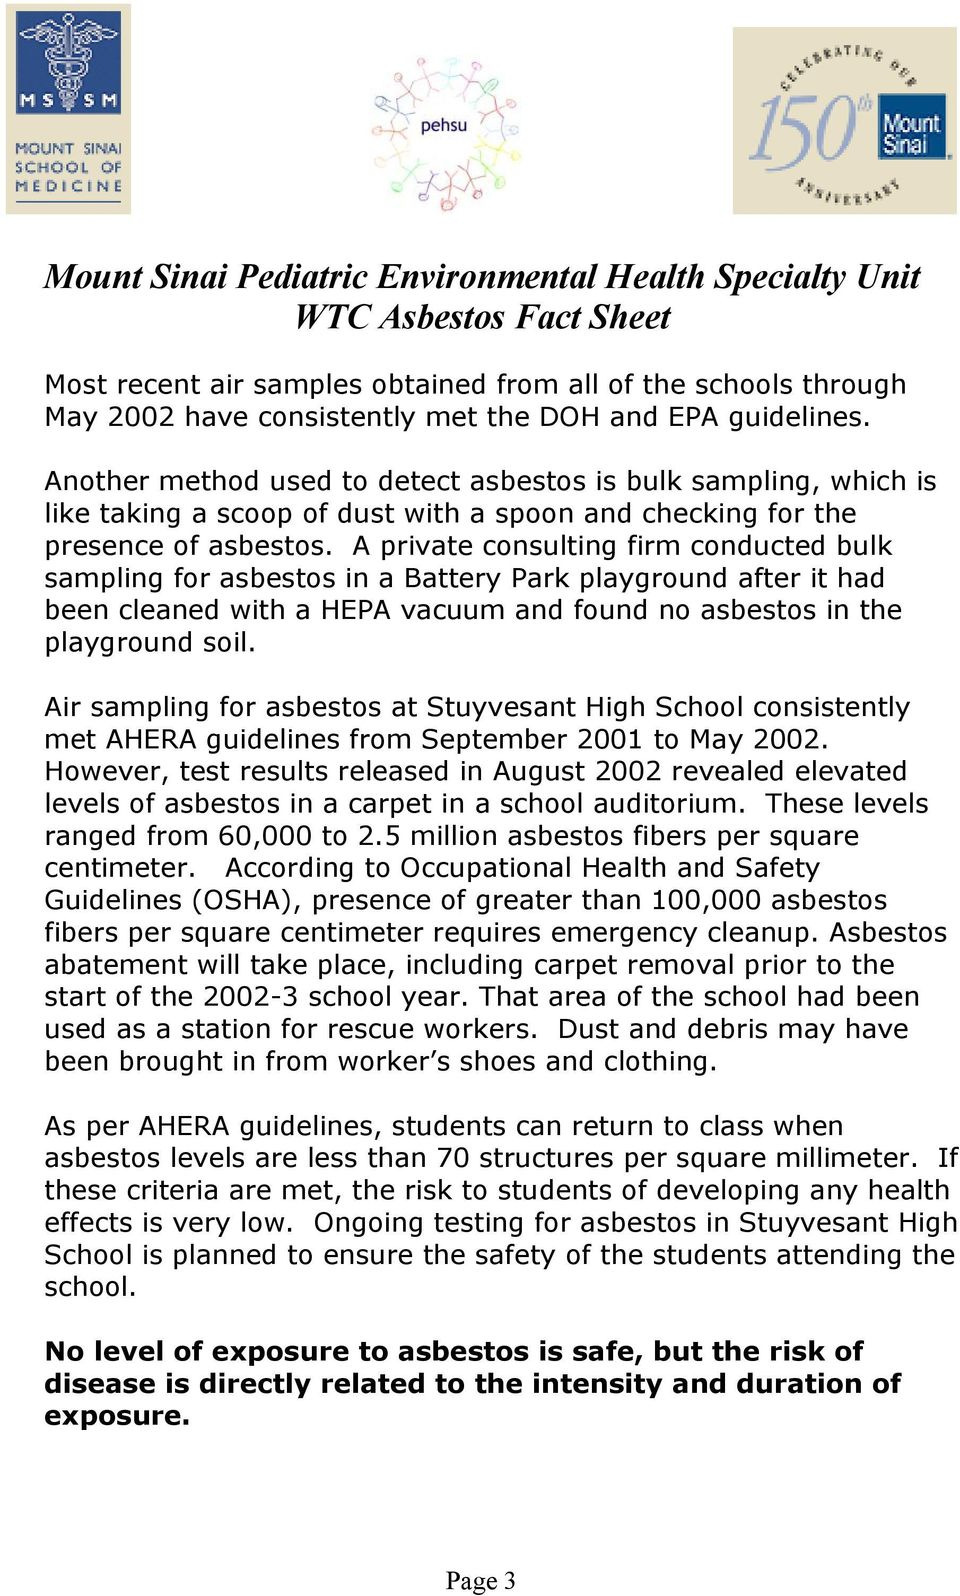 A private consulting firm conducted bulk sampling for asbestos in a Battery Park playground after it had been cleaned with a HEPA vacuum and found no asbestos in the playground soil.